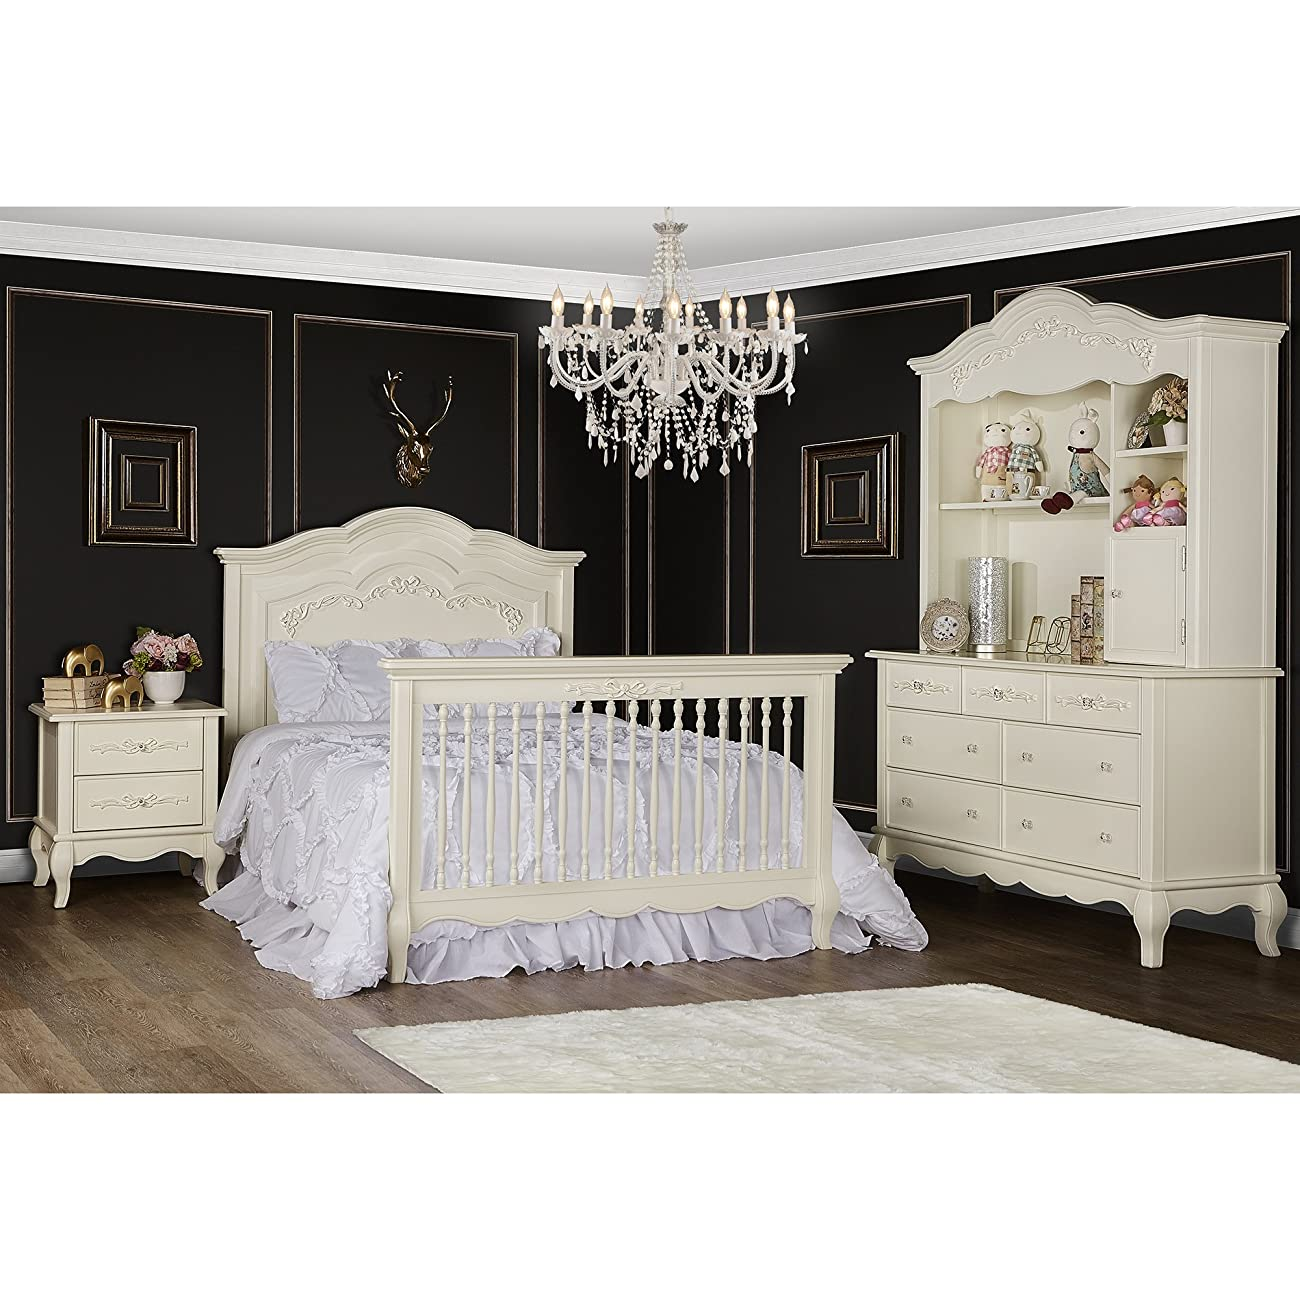 Evolur Aurora 5-in-1 Convertible Crib, Ivory Lace 5